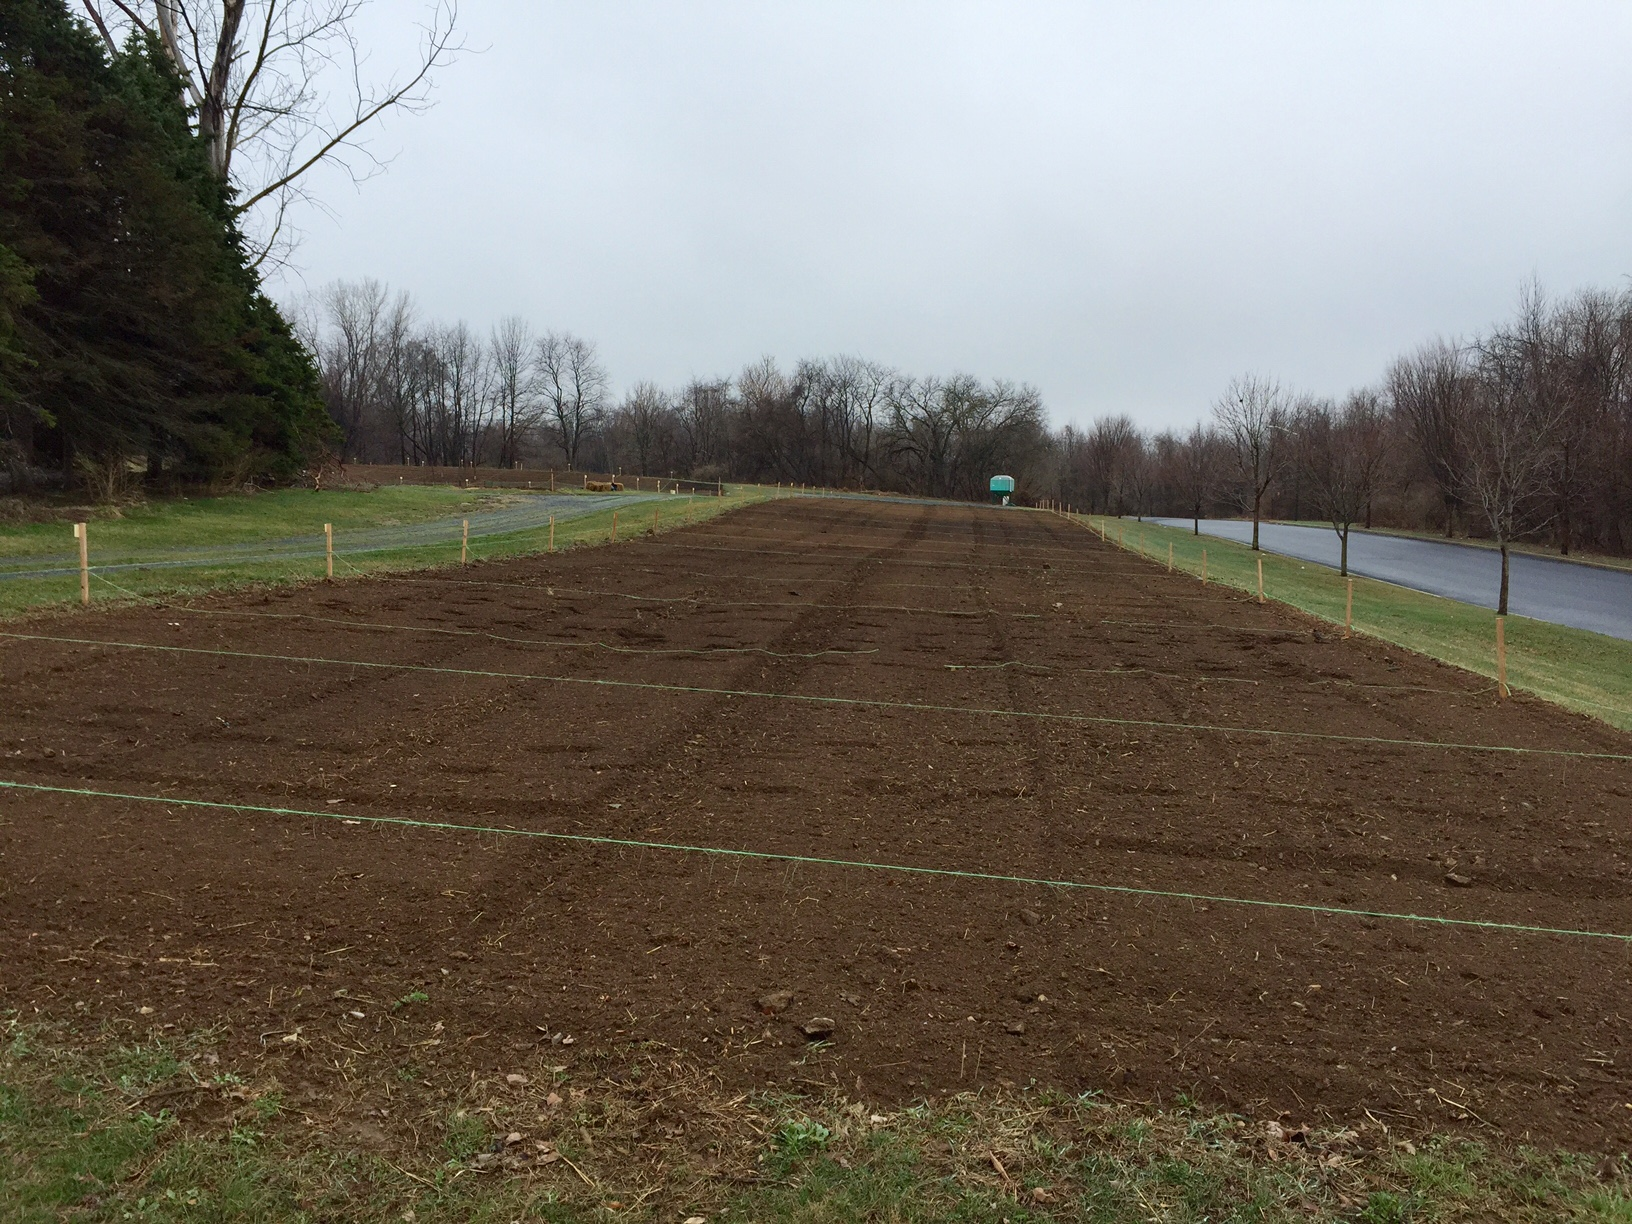 Kratzer Farm garden plots (off Bogie Ave) are tilled and ready for Spring veggies!